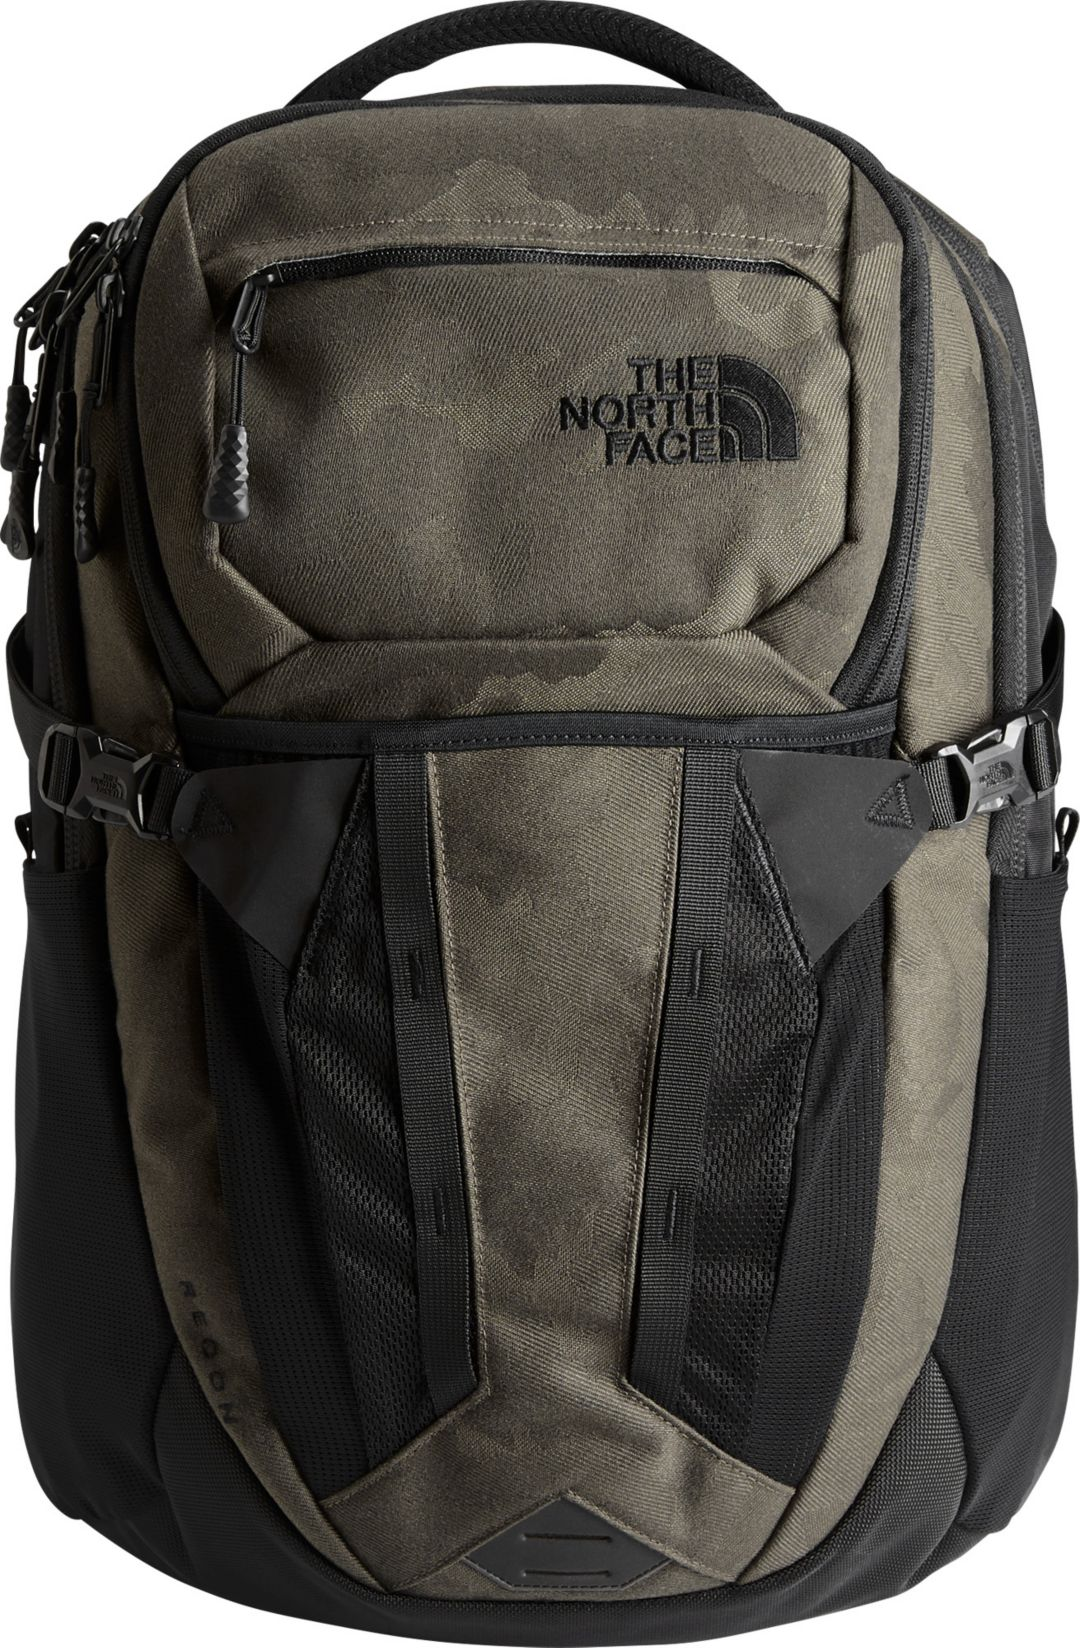 22a32496e The North Face Men's Recon 18 Backpack